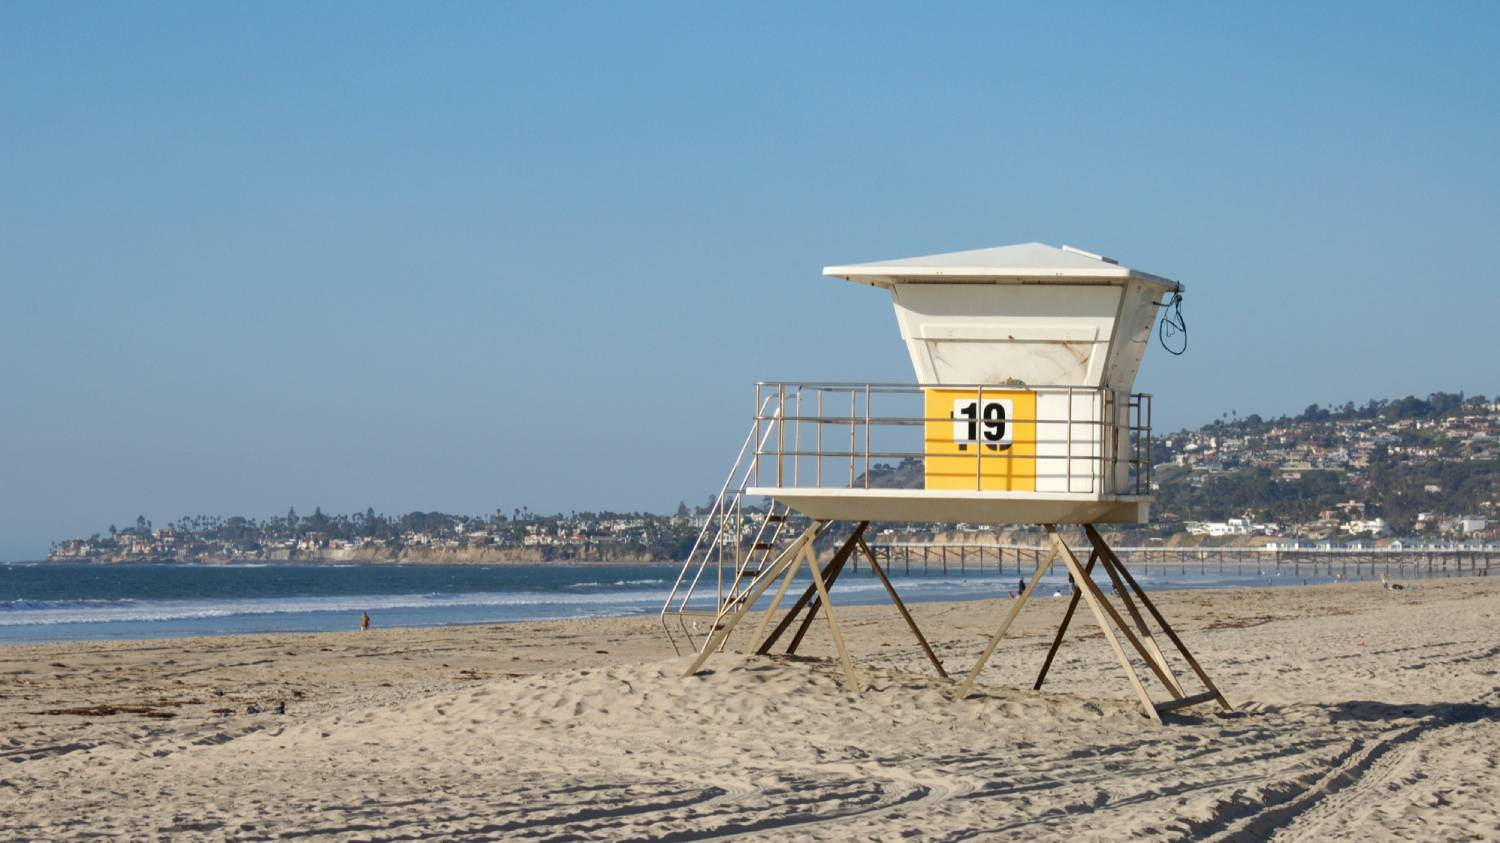 Mission Beach - Things To Do In San Diego